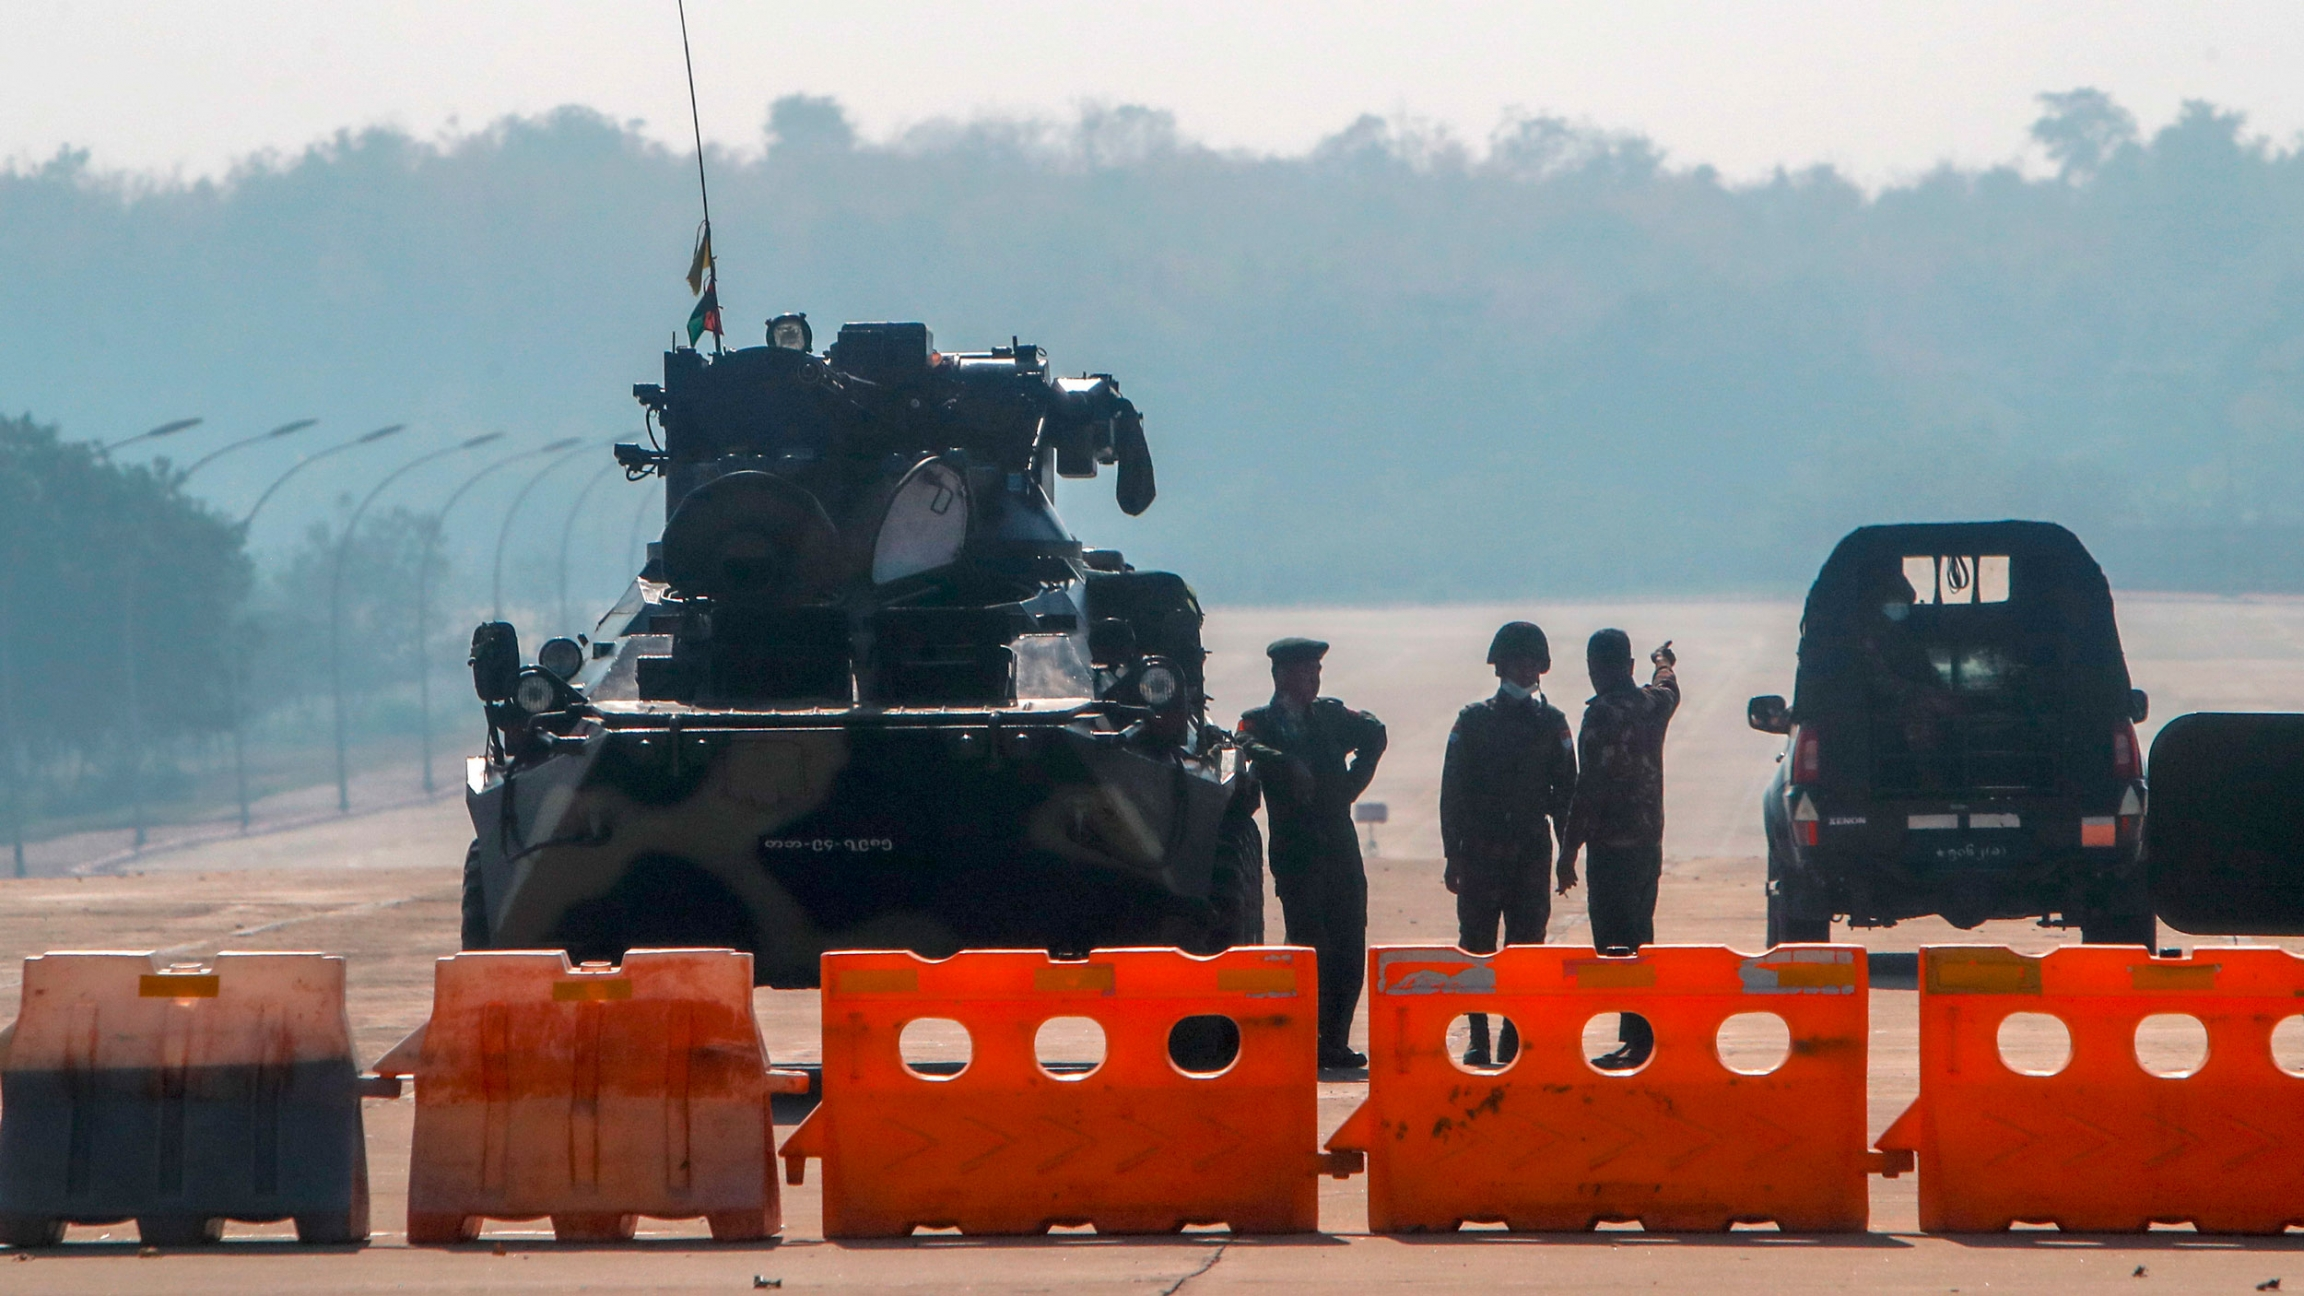 Several military personale are shown standing next to a tank with orange road blocks lined up across as road.